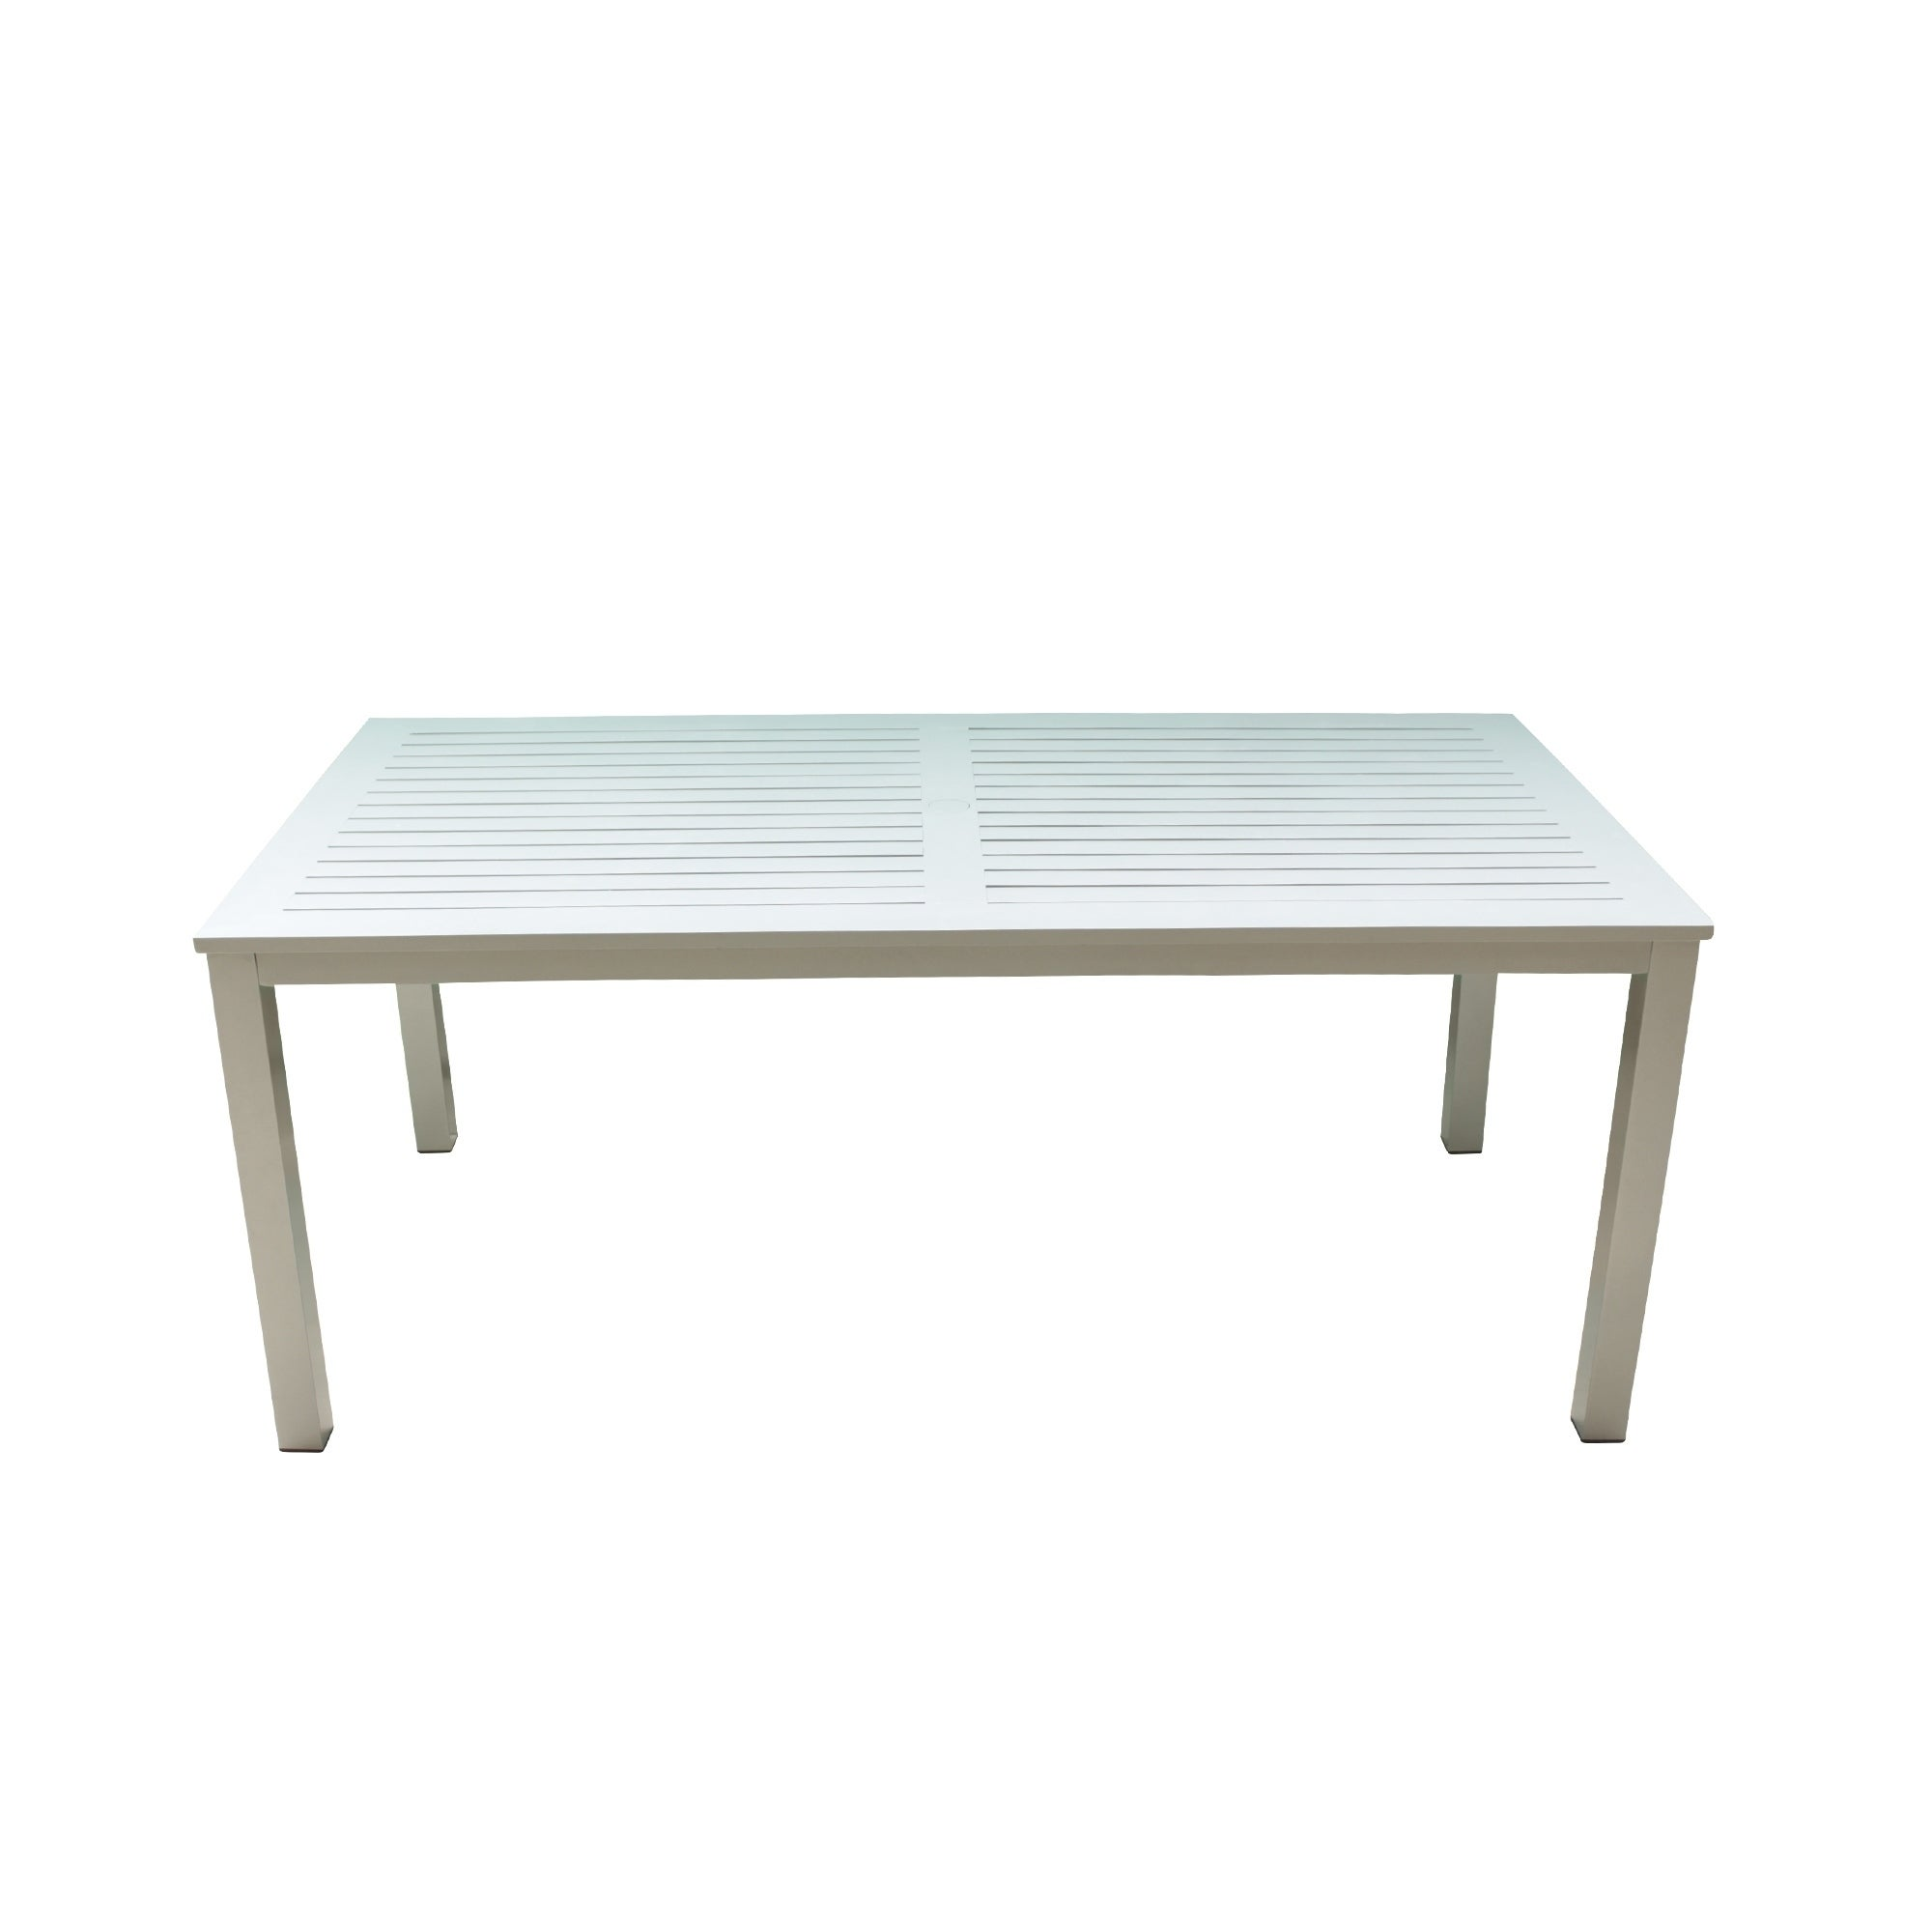 Courtyard Casual Skyline Grey White Aluminum Outdoor Rectangle Dining Table